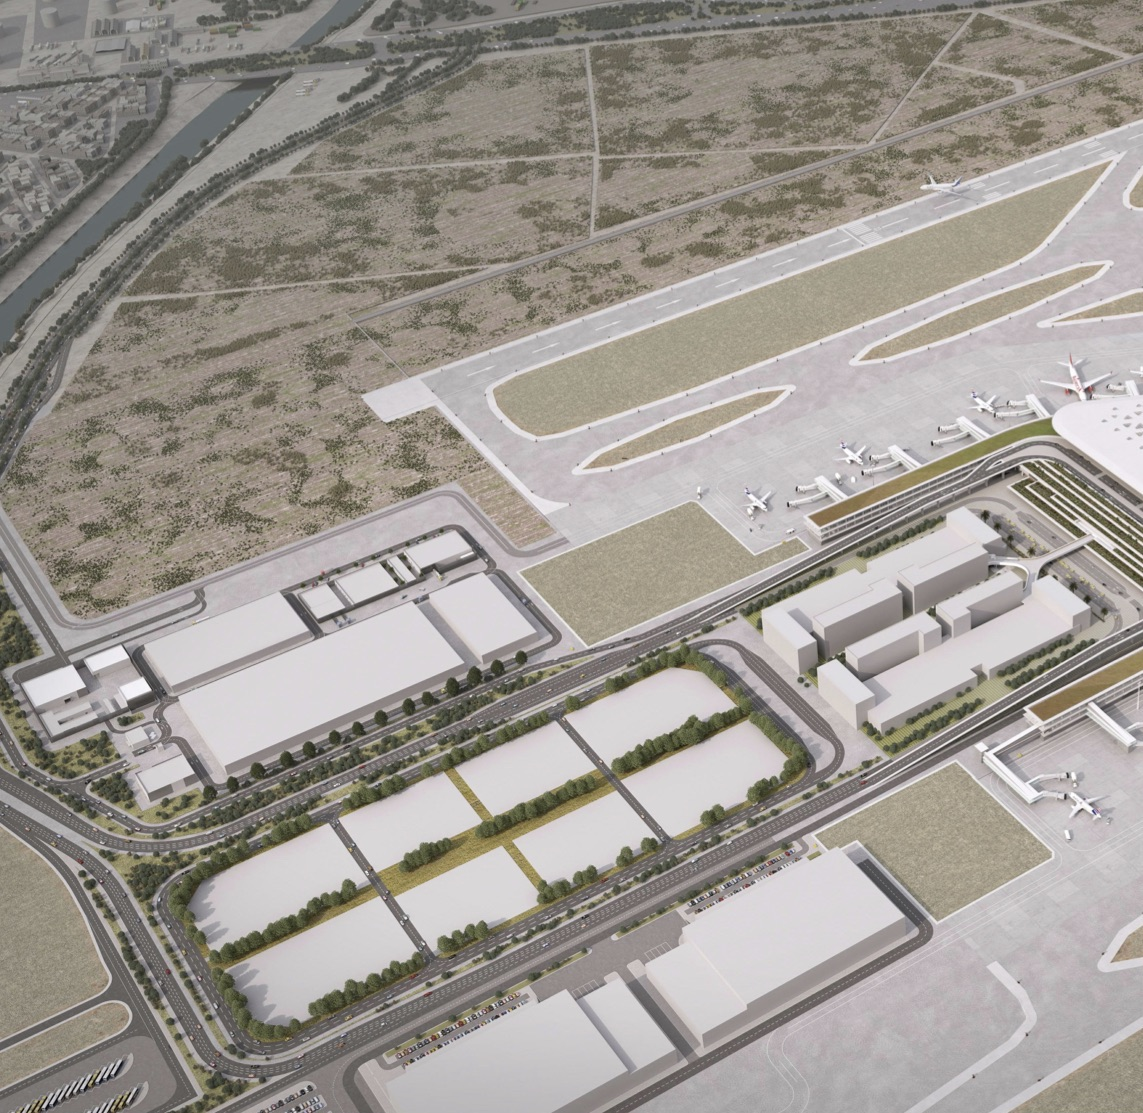 A NEW ECONOMIC AREA FOR THE REGION - The airport city of Lima and Callao is ready for developers and real estate investors to take advantage of a wide range of market sectors.The plan will boost logistic, cargo and aeronautical activities, as well as new service areas for passengers, hotels, offices and commercial businesses.